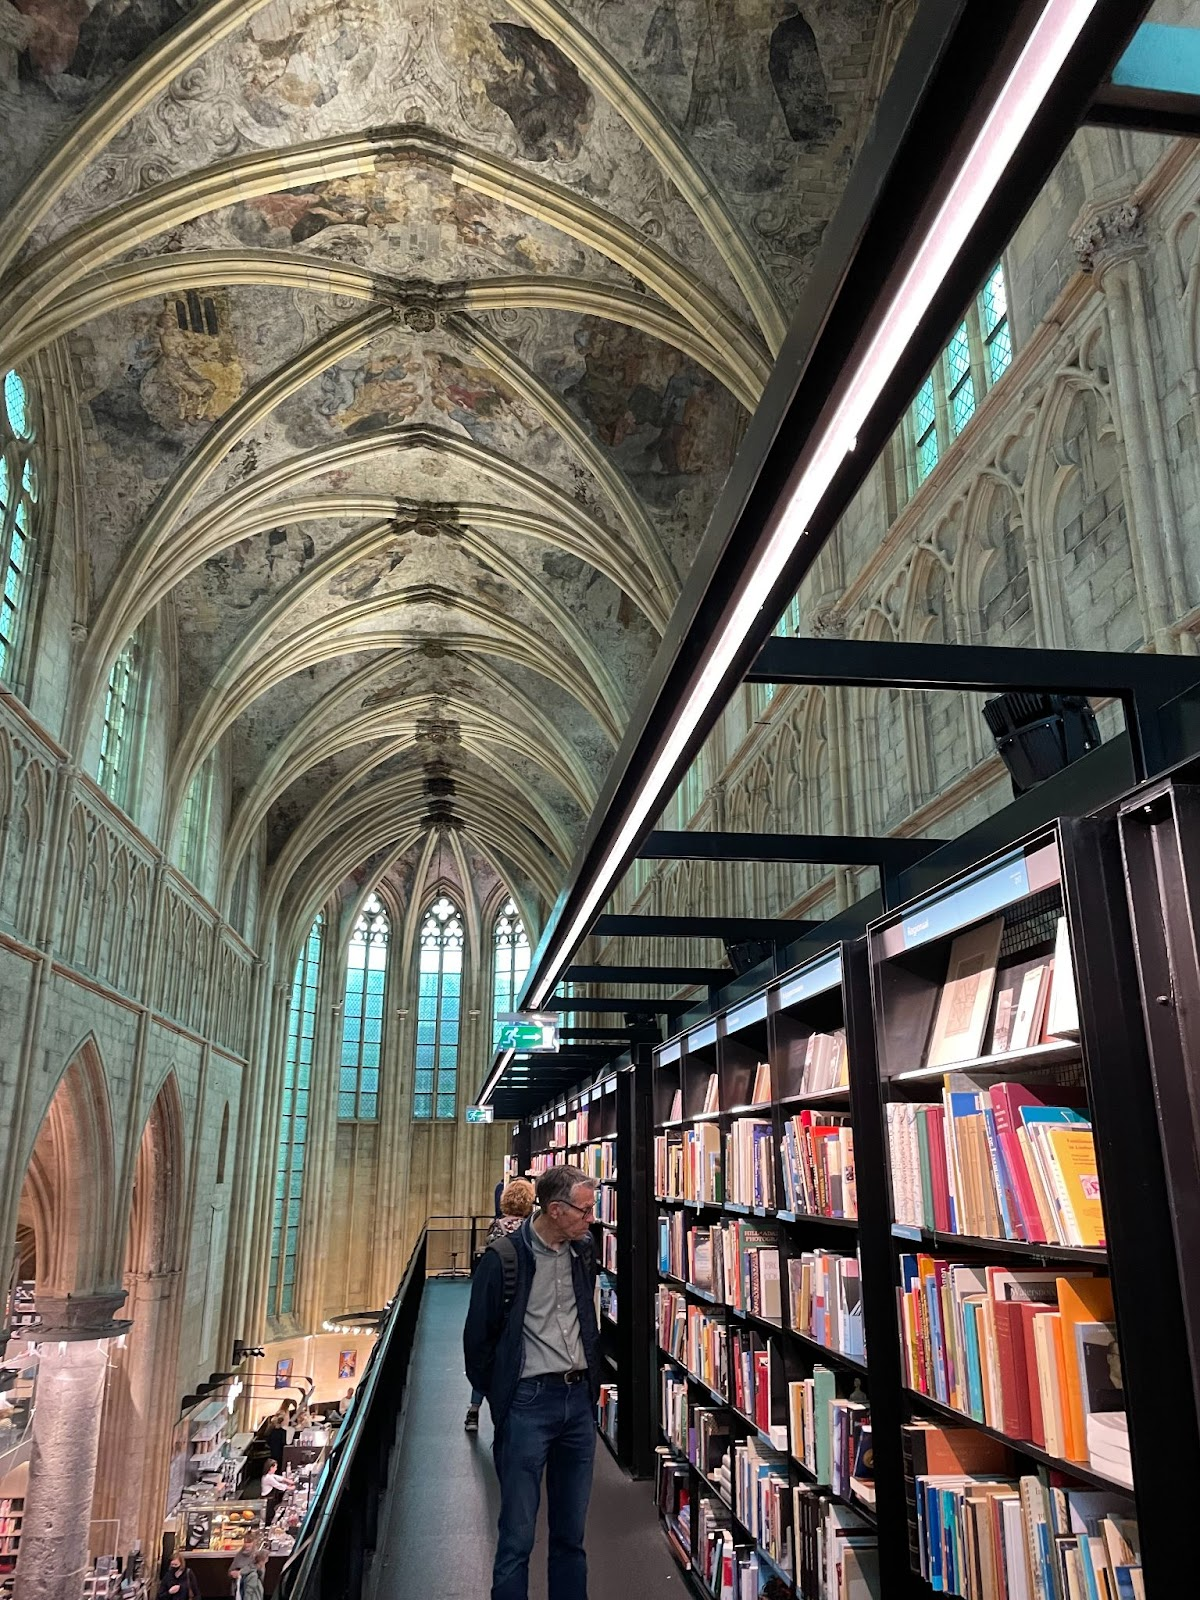 Church converted into a bookstore in Maastricht, Netherlands